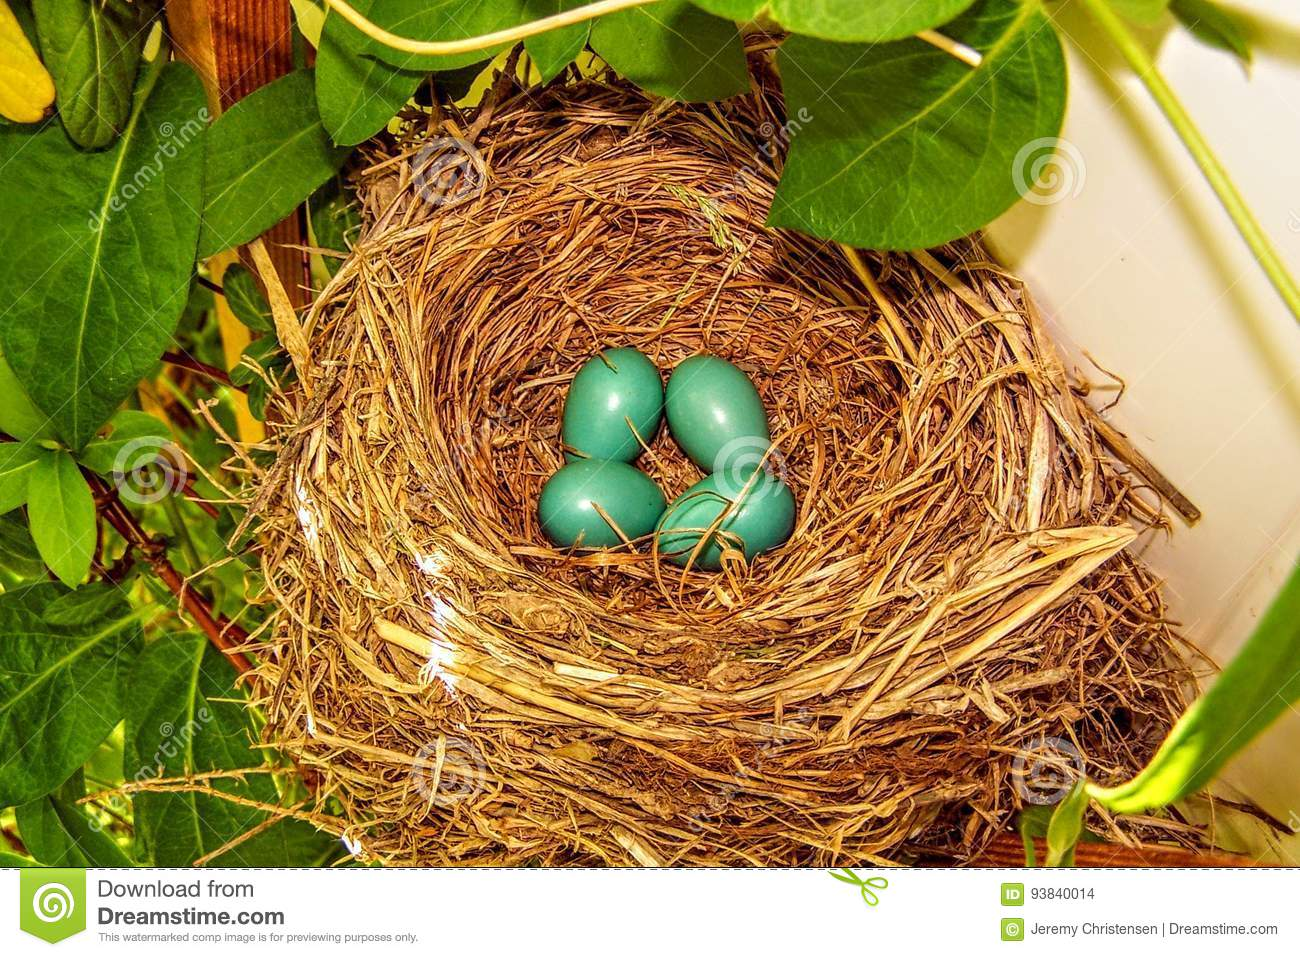 Close-up van Blauw Robin Eggs in een Nest in een Boom